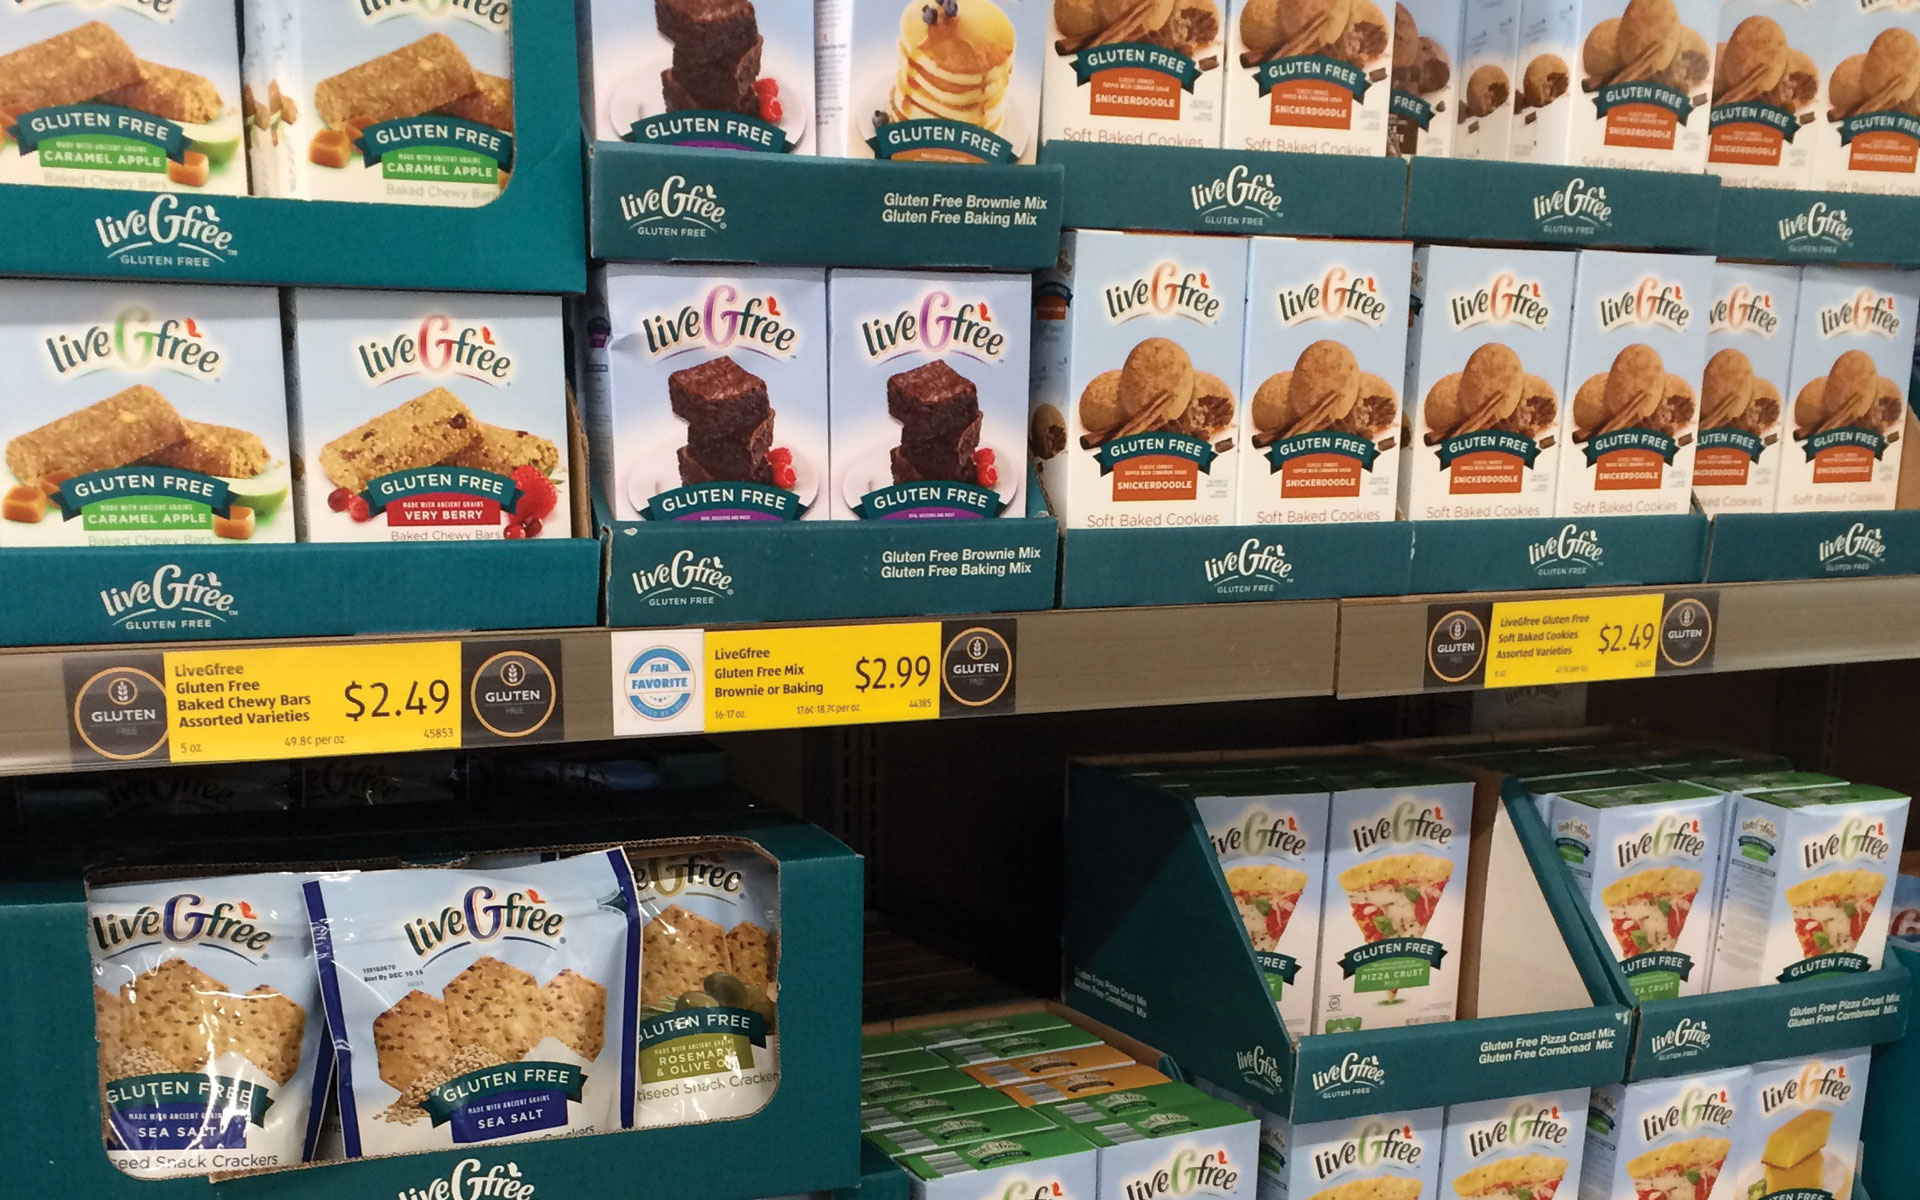 Aldi LiveGfree - Shelf Set